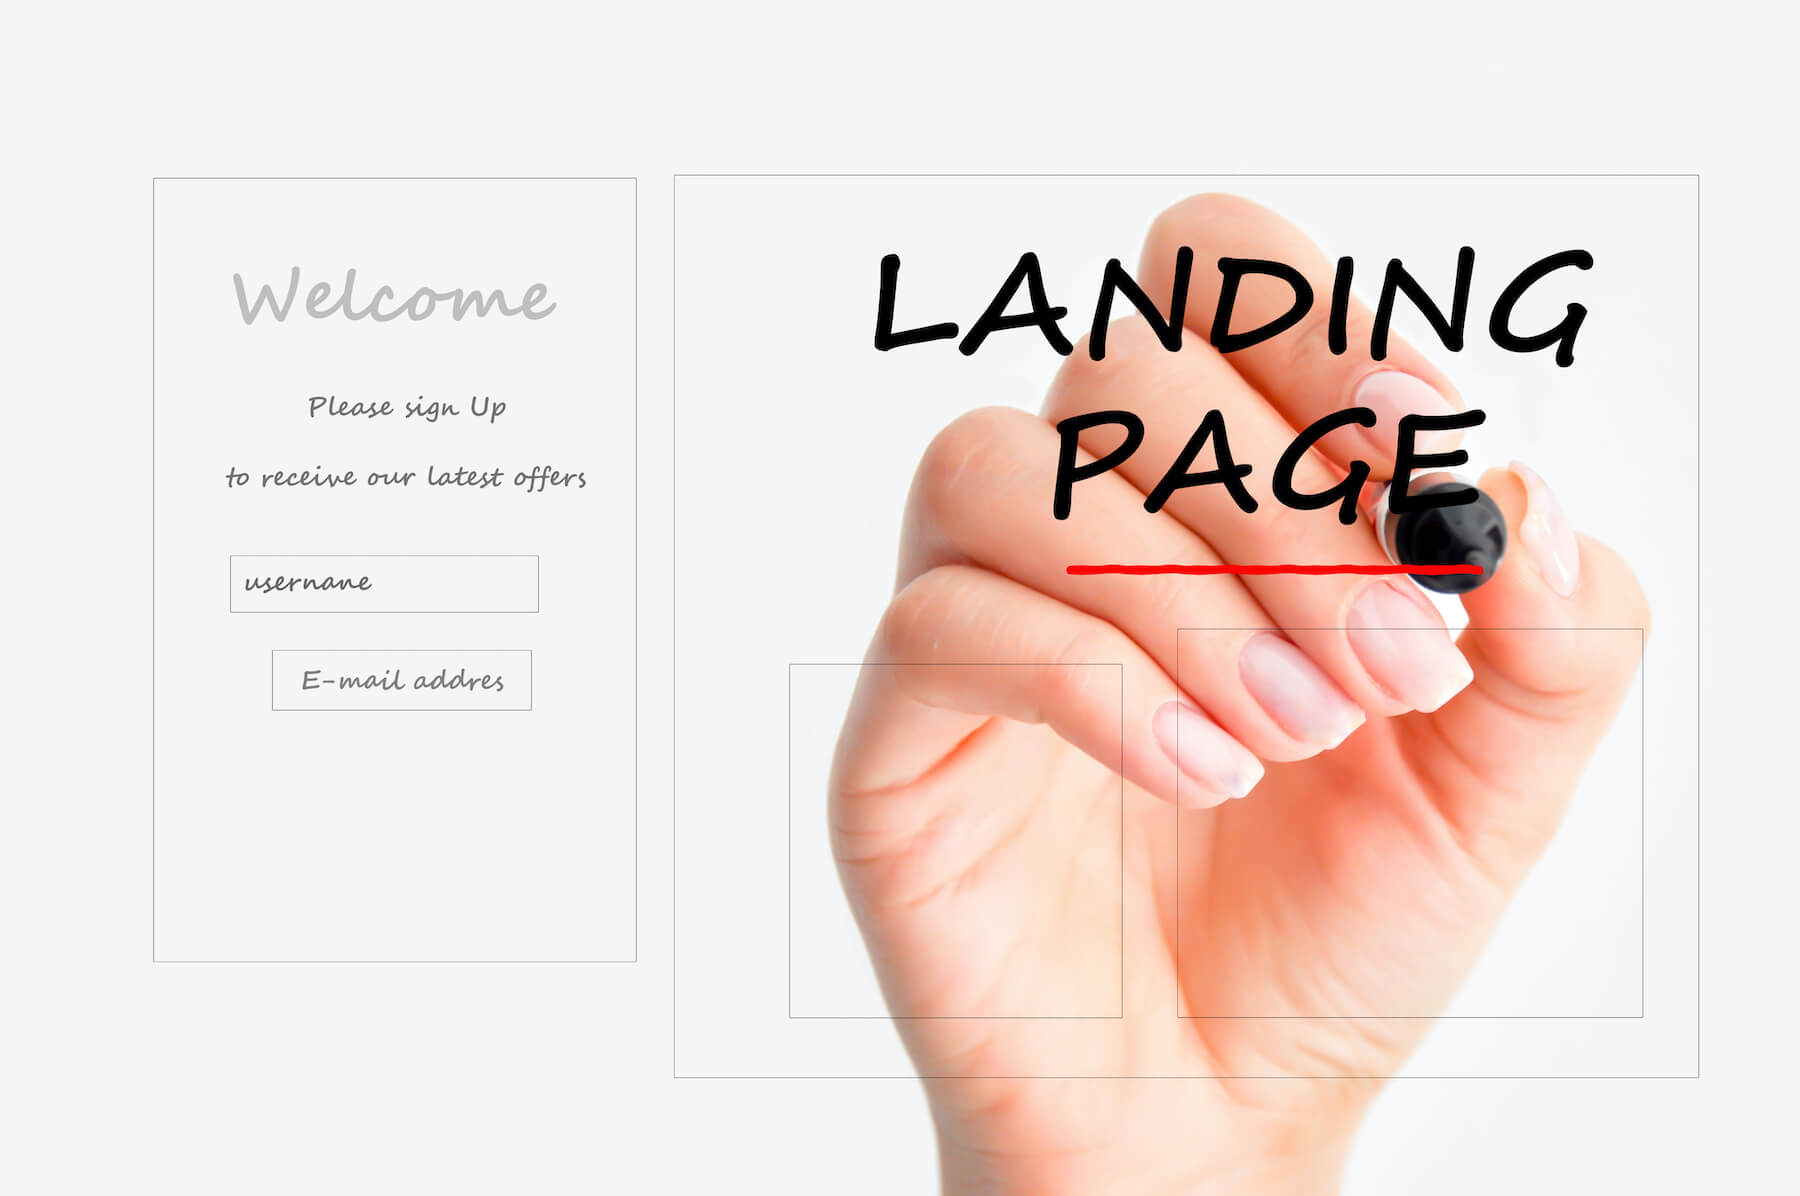 Someone drawing out 3 tips for landing page copy